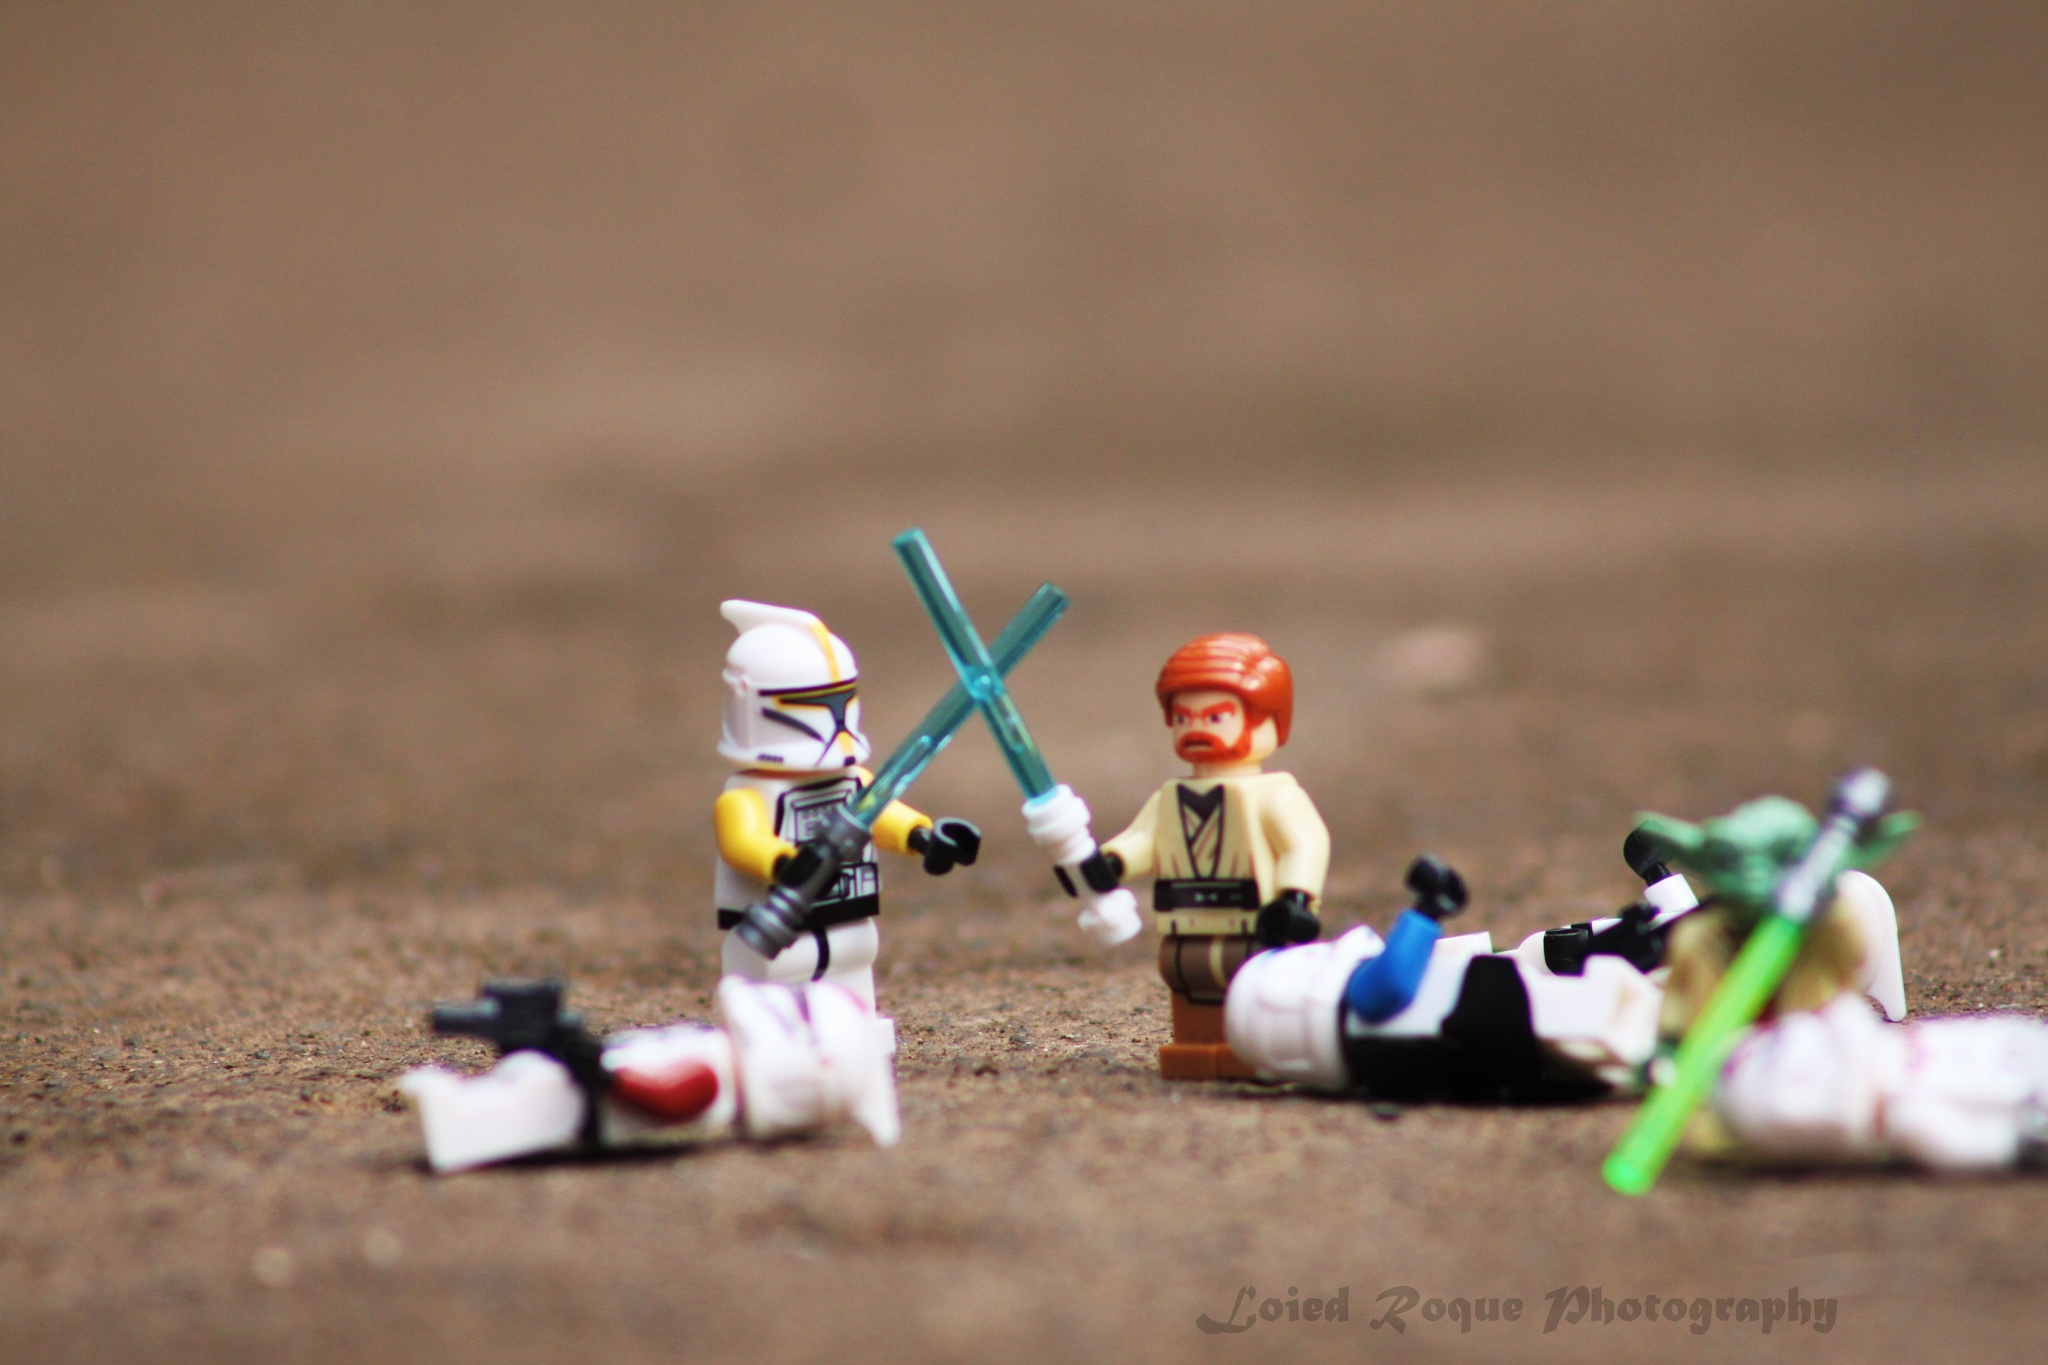 LEGOPHOTOGRAPHY by Loied Roque